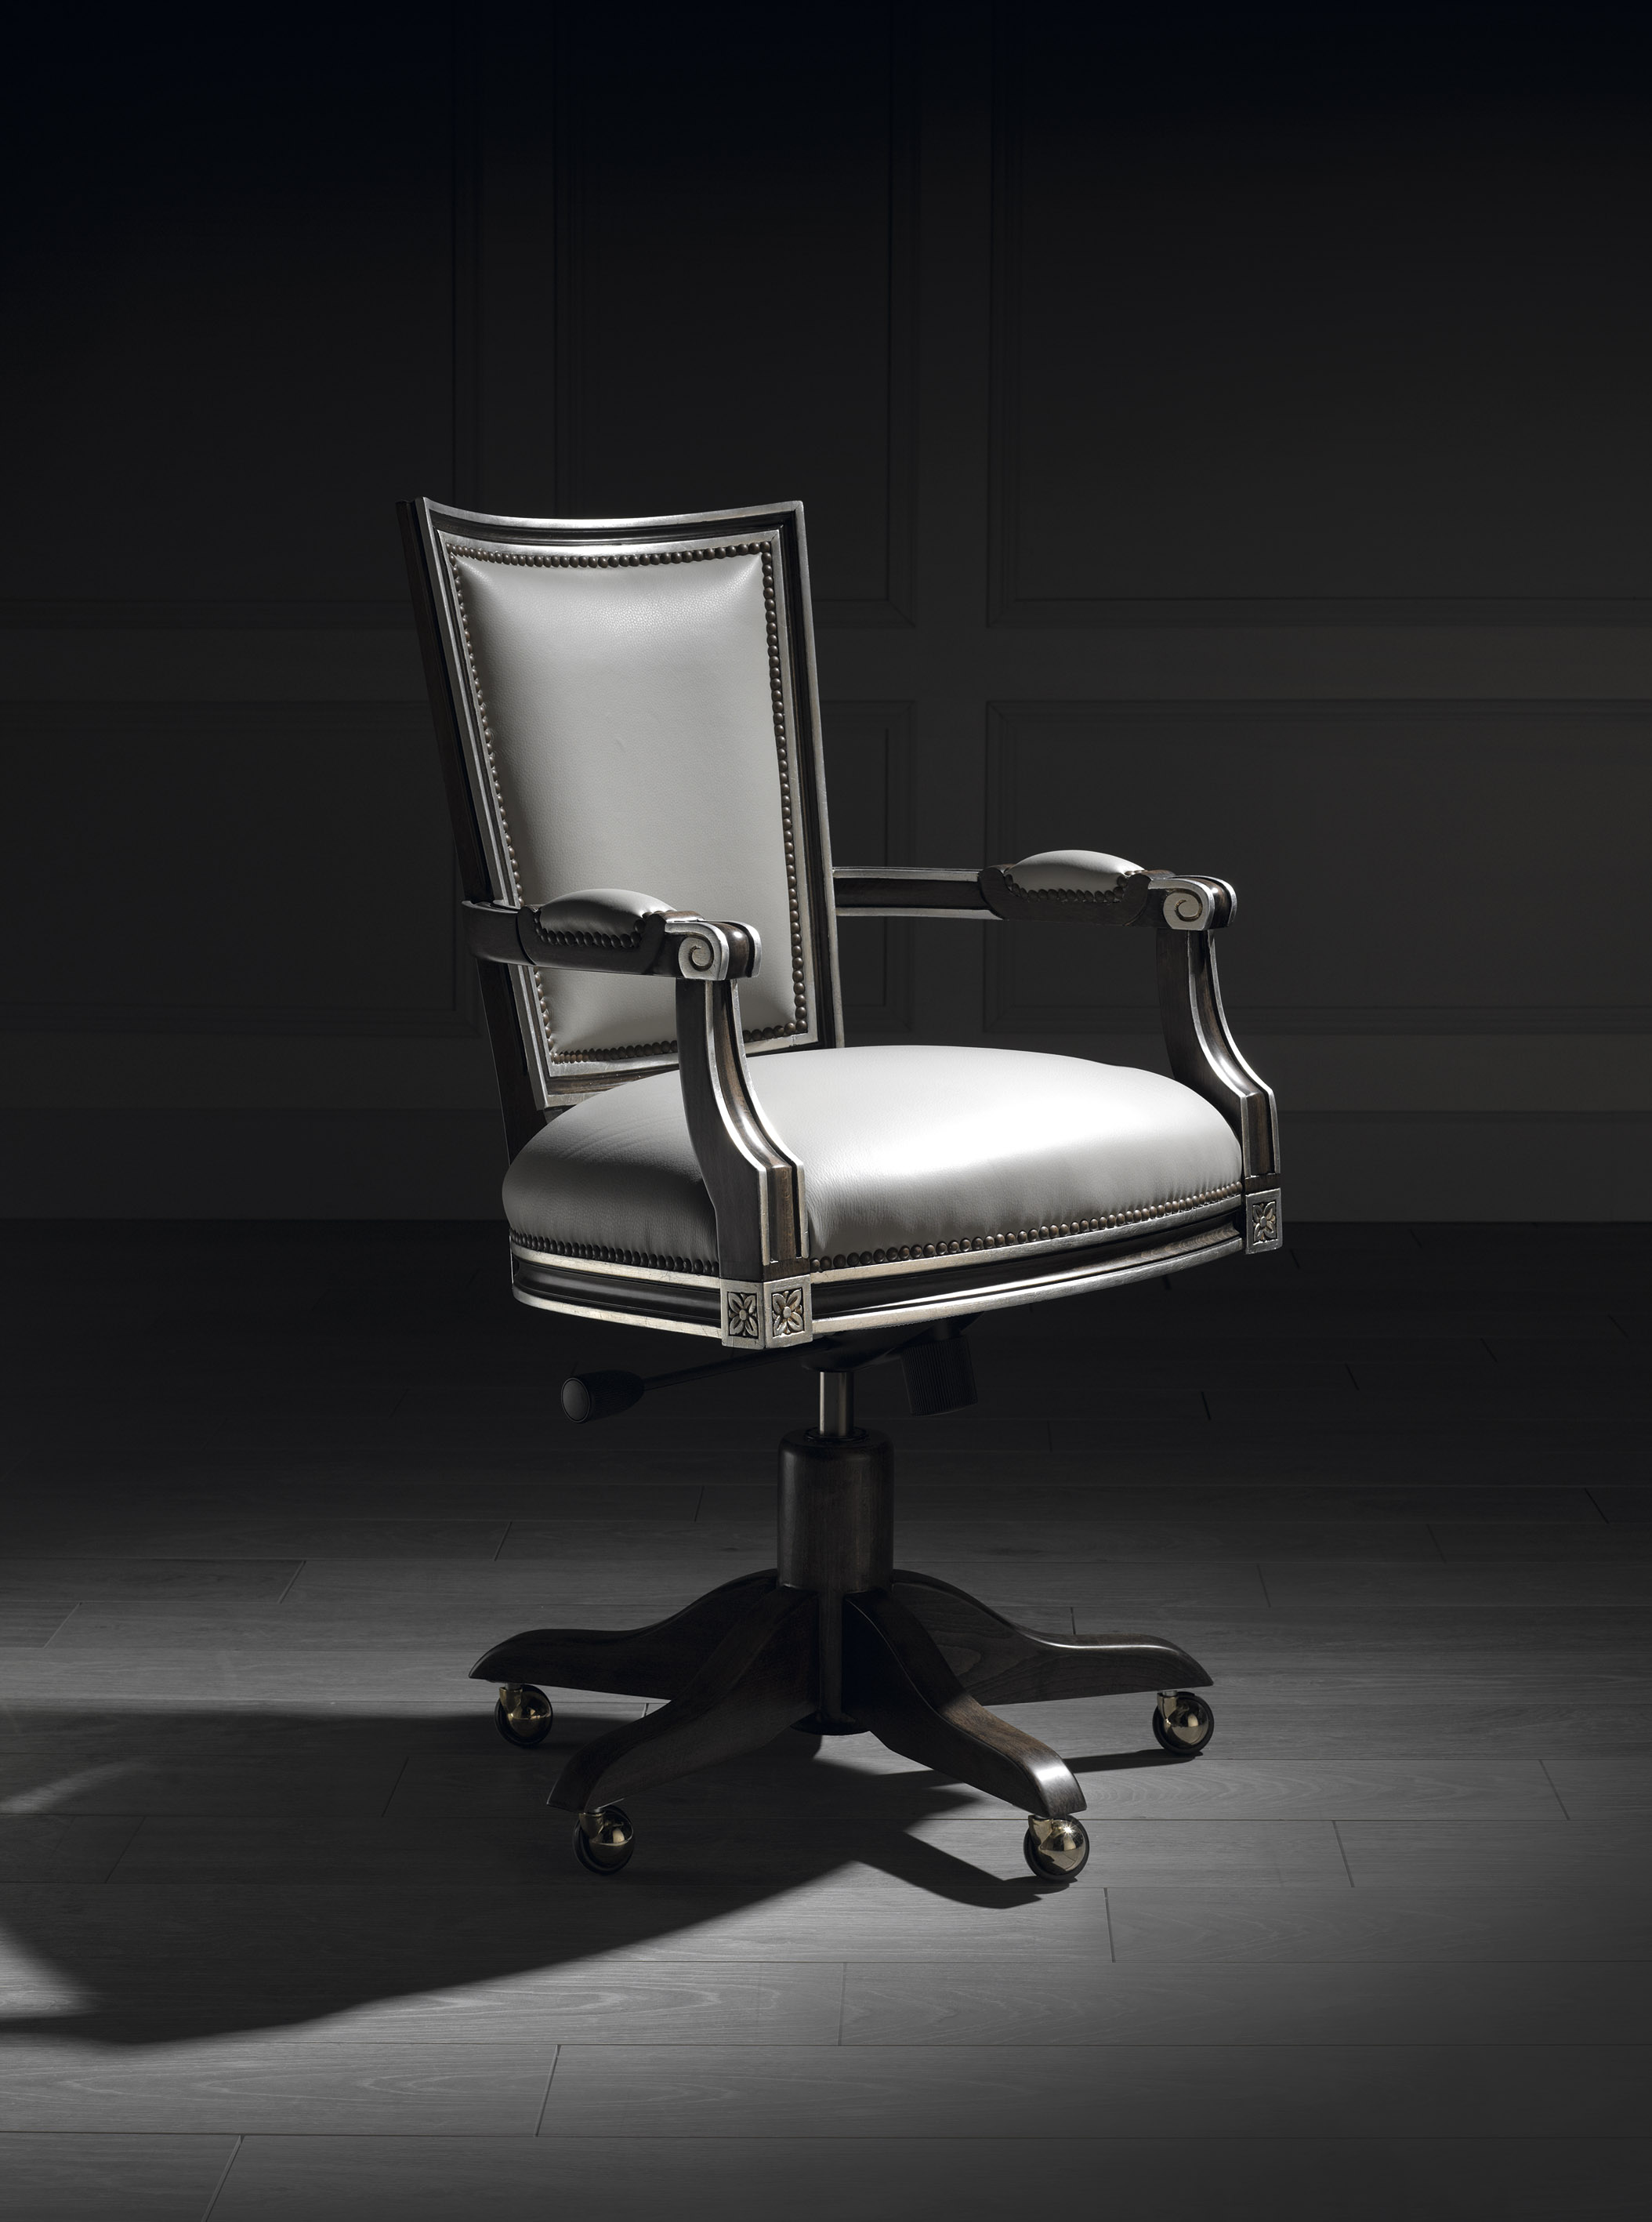 office chairs uk, office desk, home office chairs, luxury office chairs